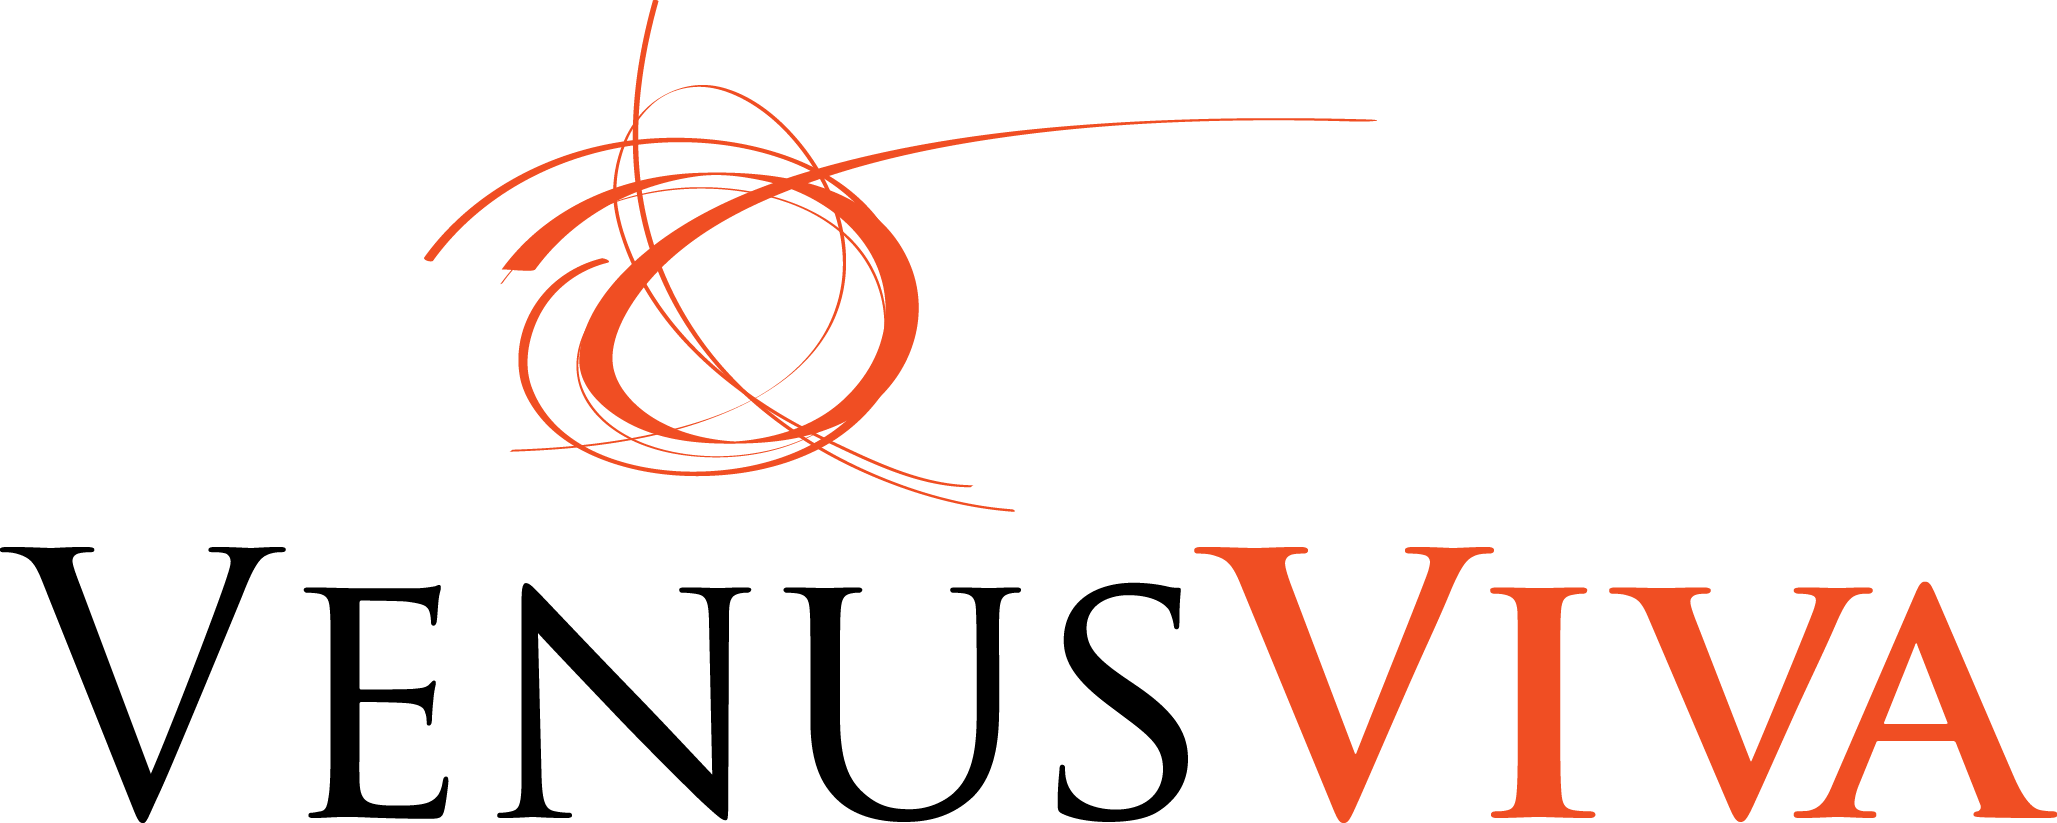 Viva Home Comfort >> Venus Viva™ receives FDA clearance for dermatological procedures requiring ablation and ...